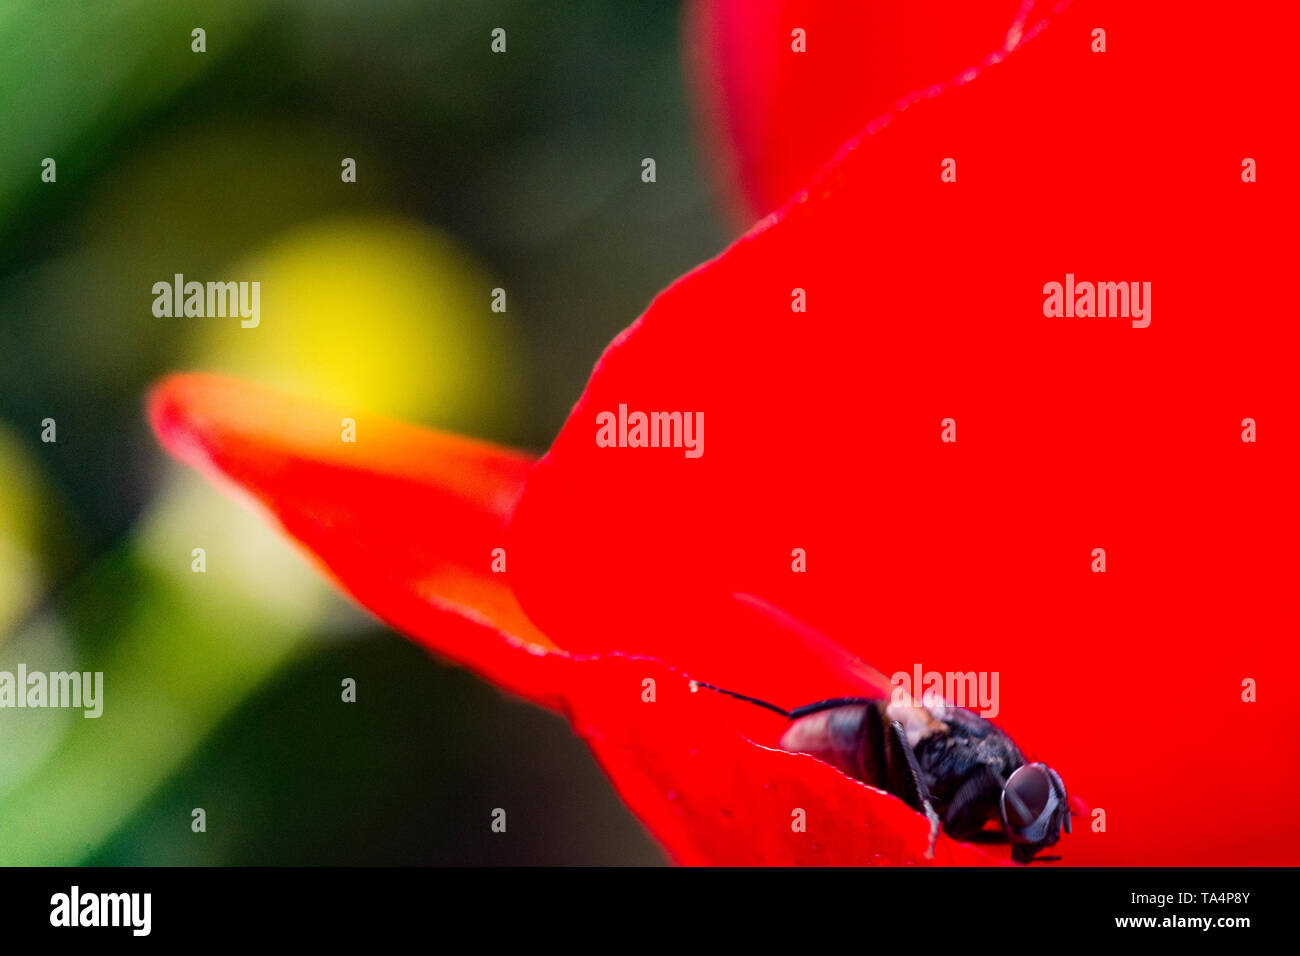 a fly walking to a red poppy flower like a fugitive - Stock Image